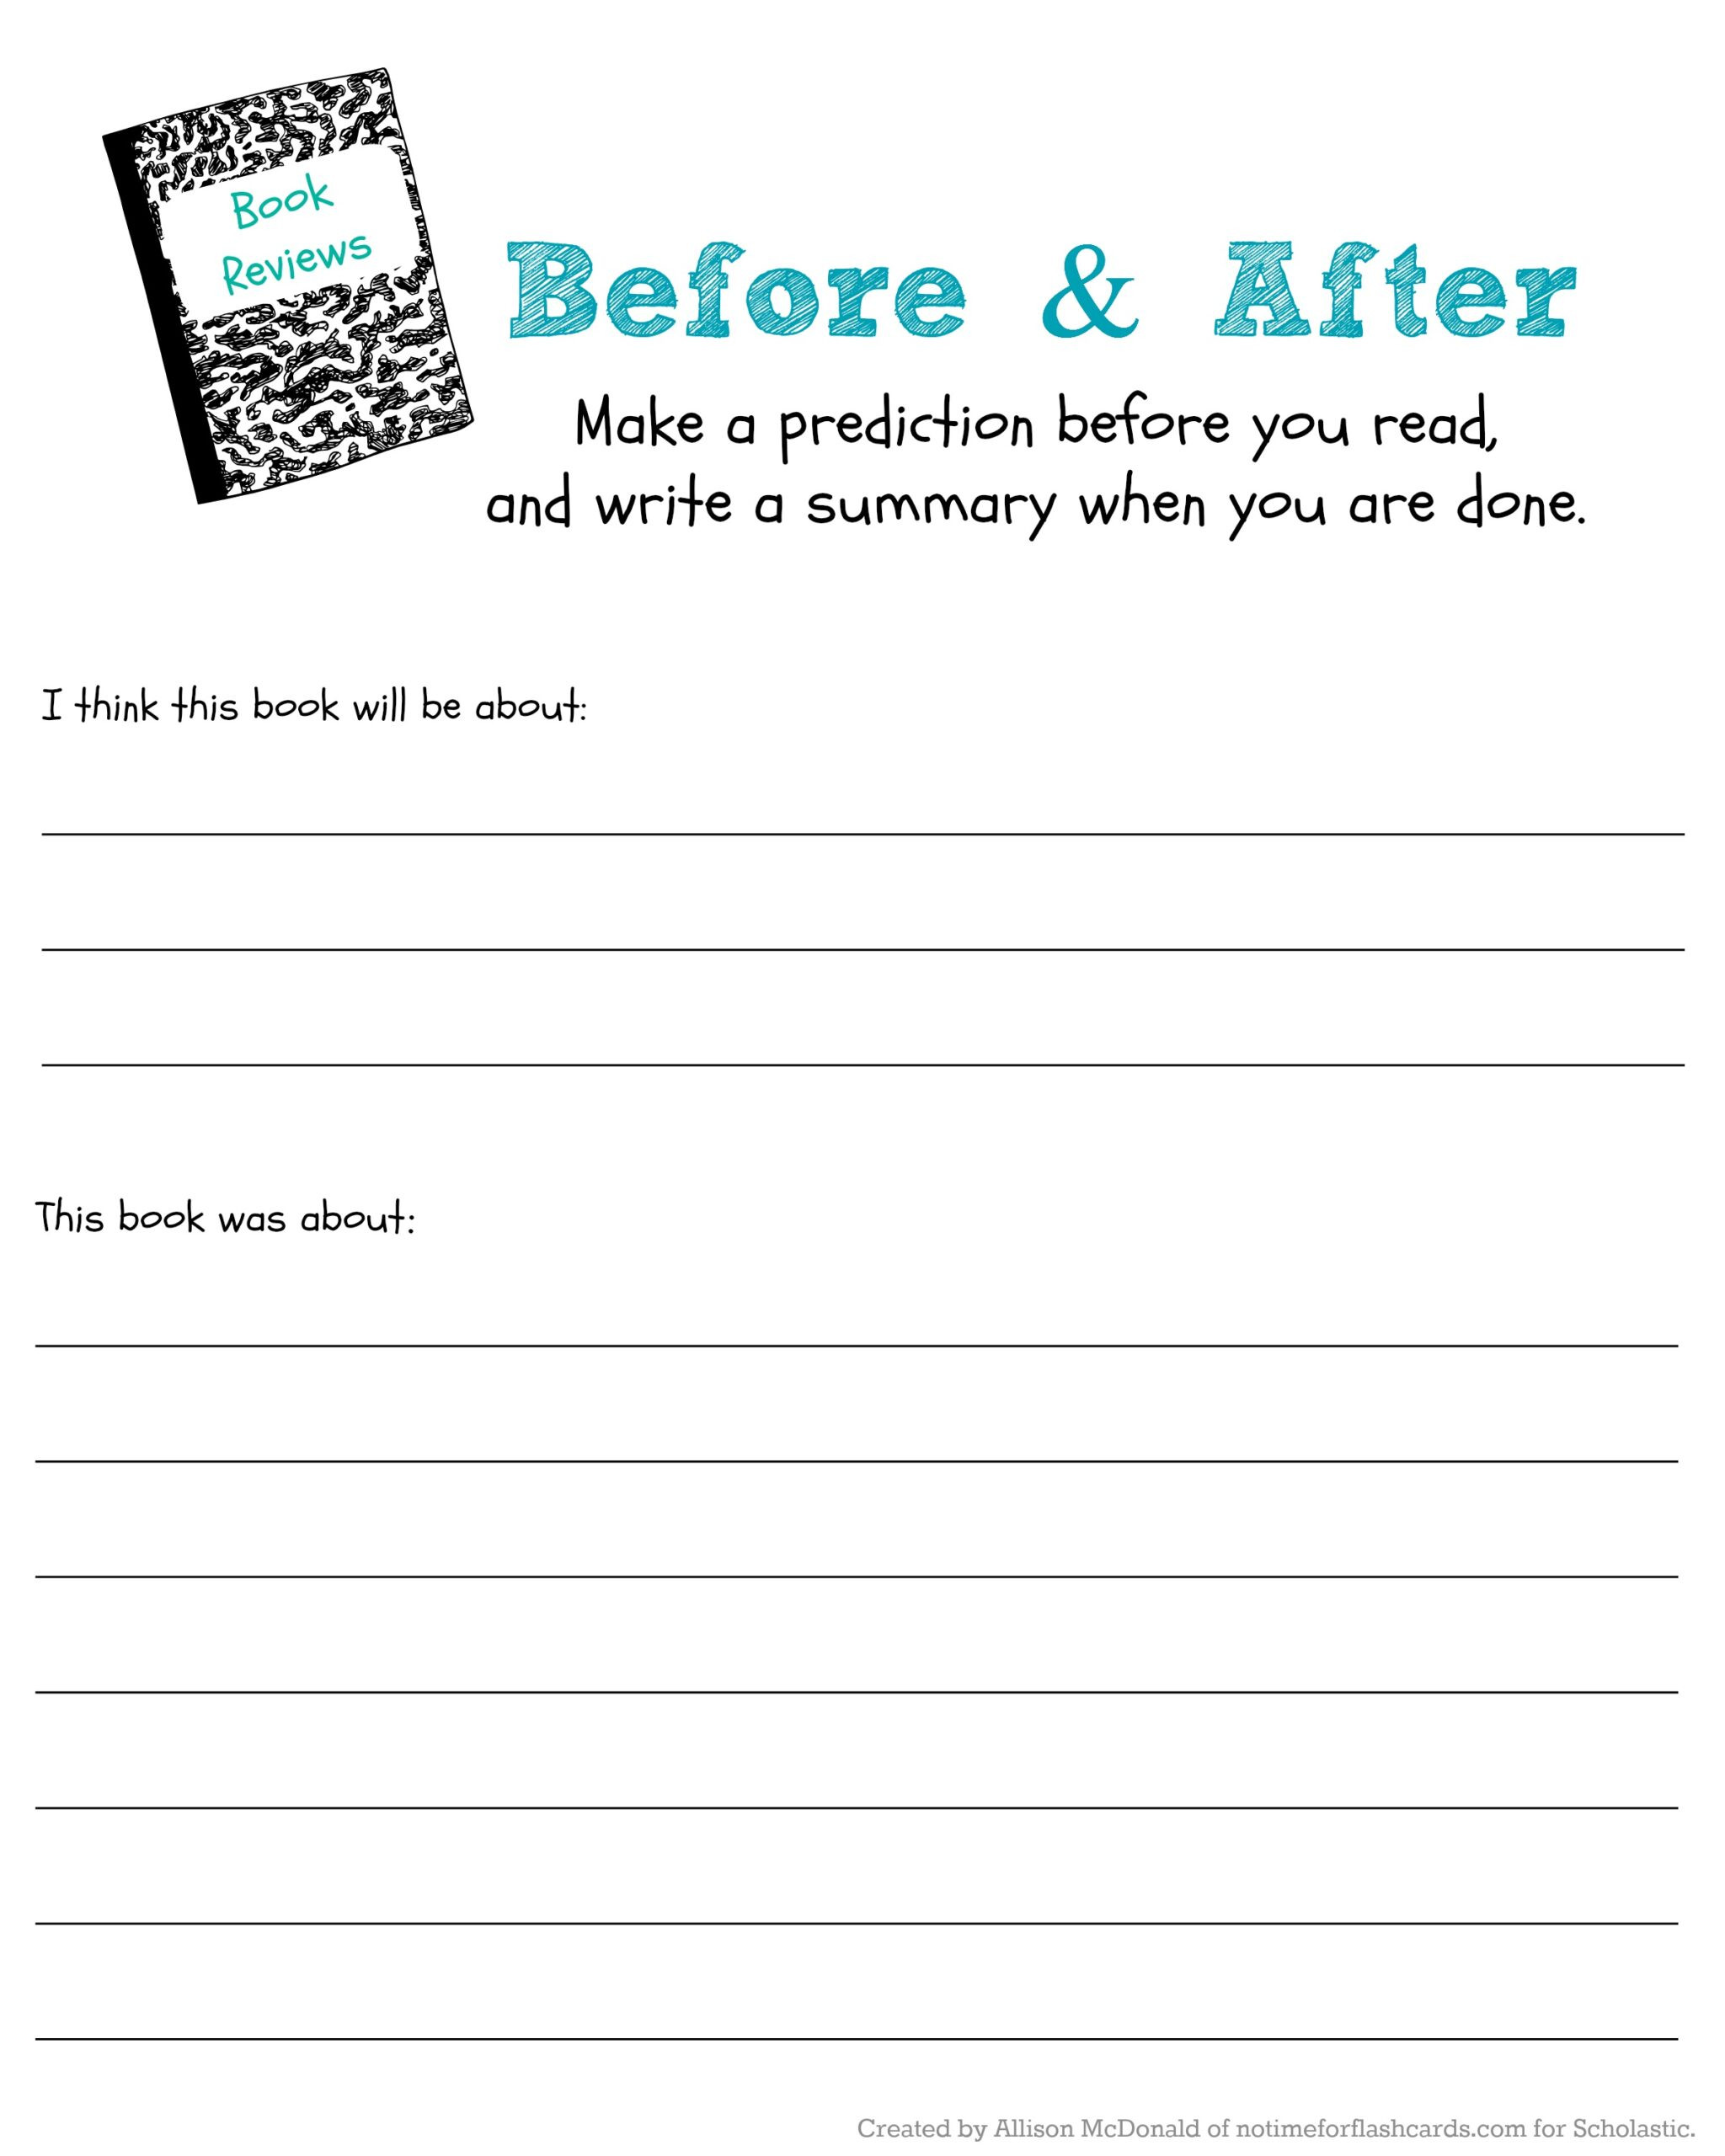 Summary Worksheets 5th Grade Judge Book by Its Cover to Predict Read Scholastic Parents